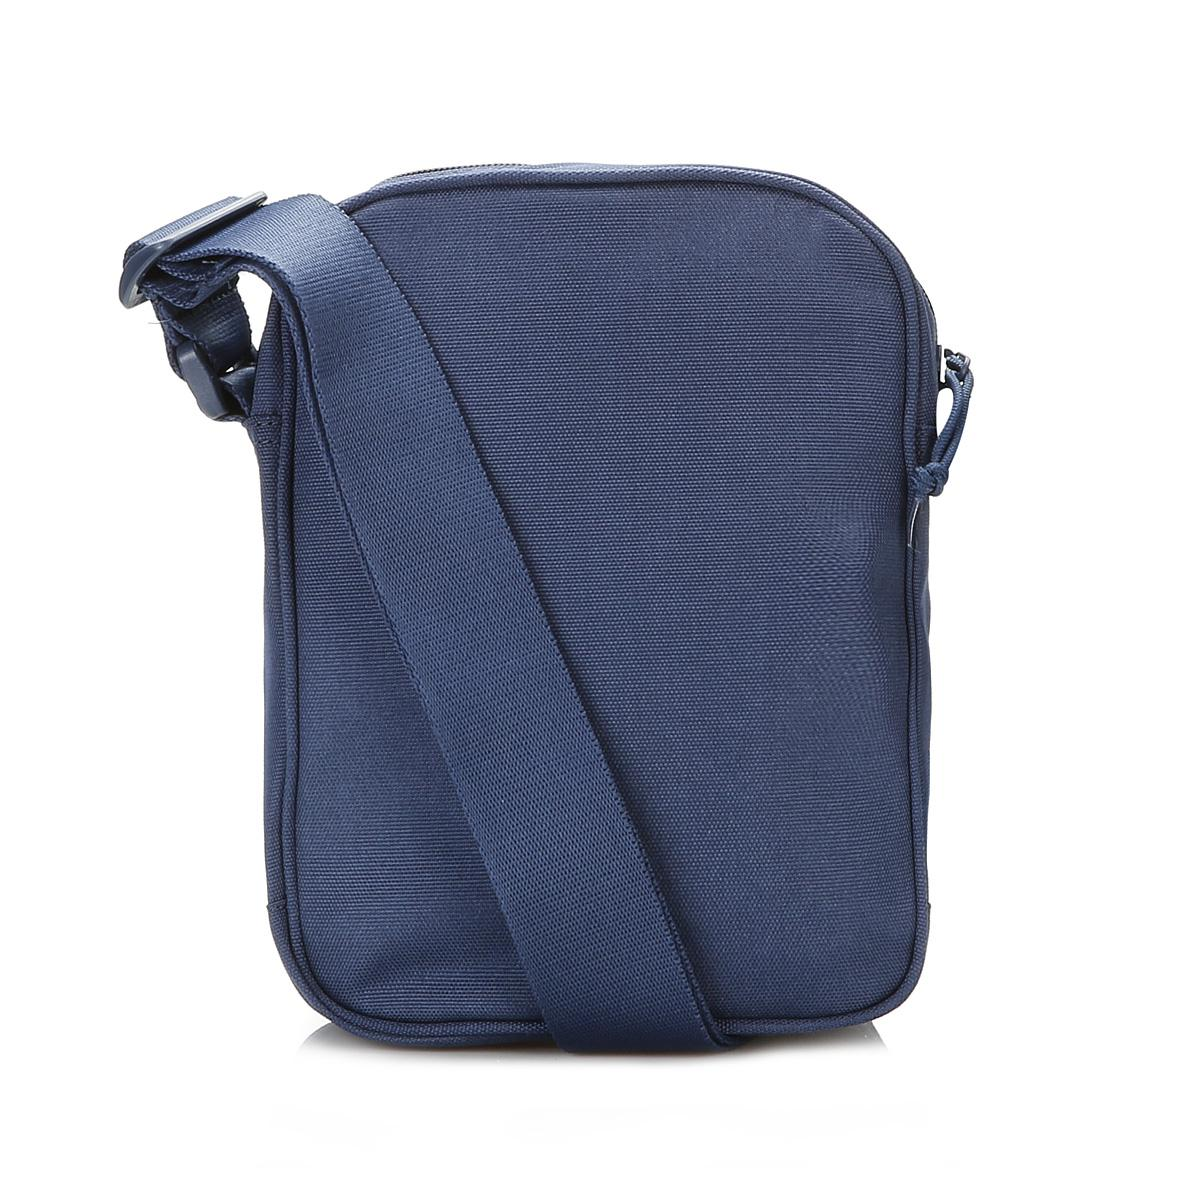 f0984bd9ee Converse - Blue Navy Cross Body Bag for Men - Lyst. View fullscreen